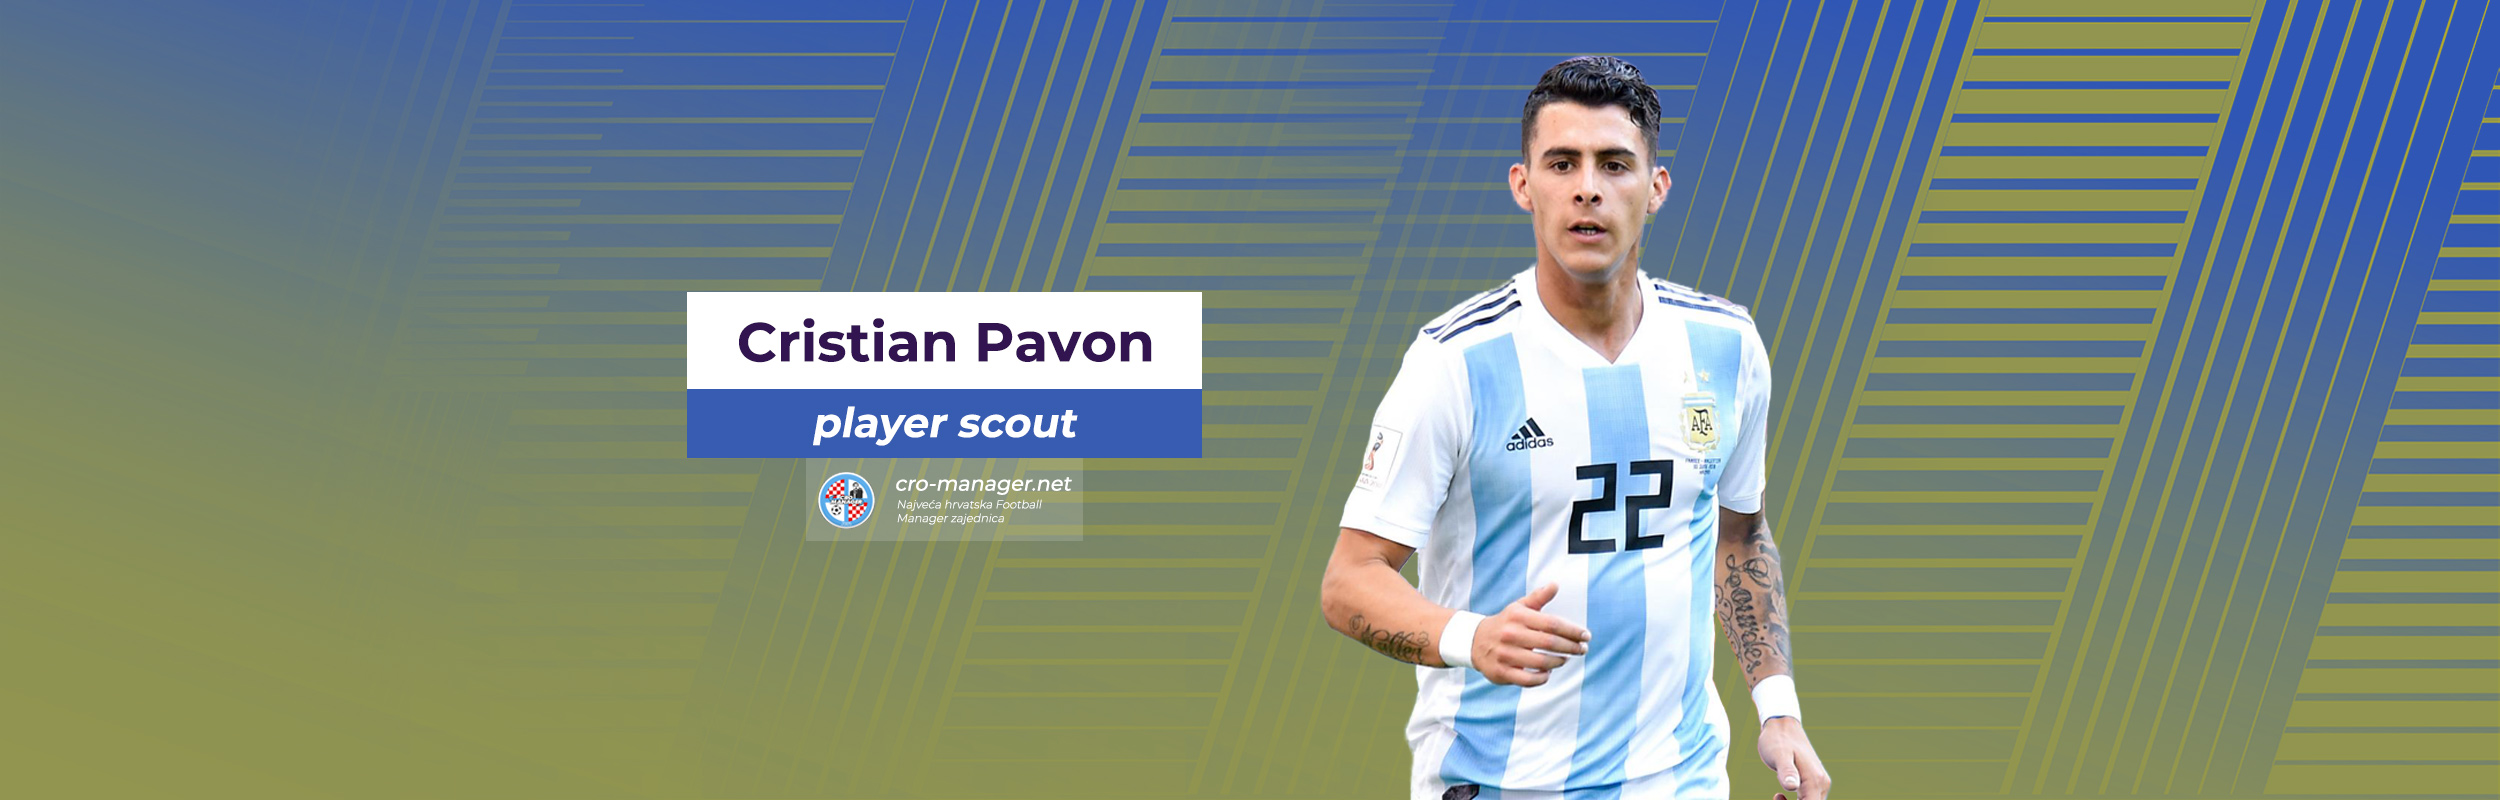 Player Scout: Cristian Pavon